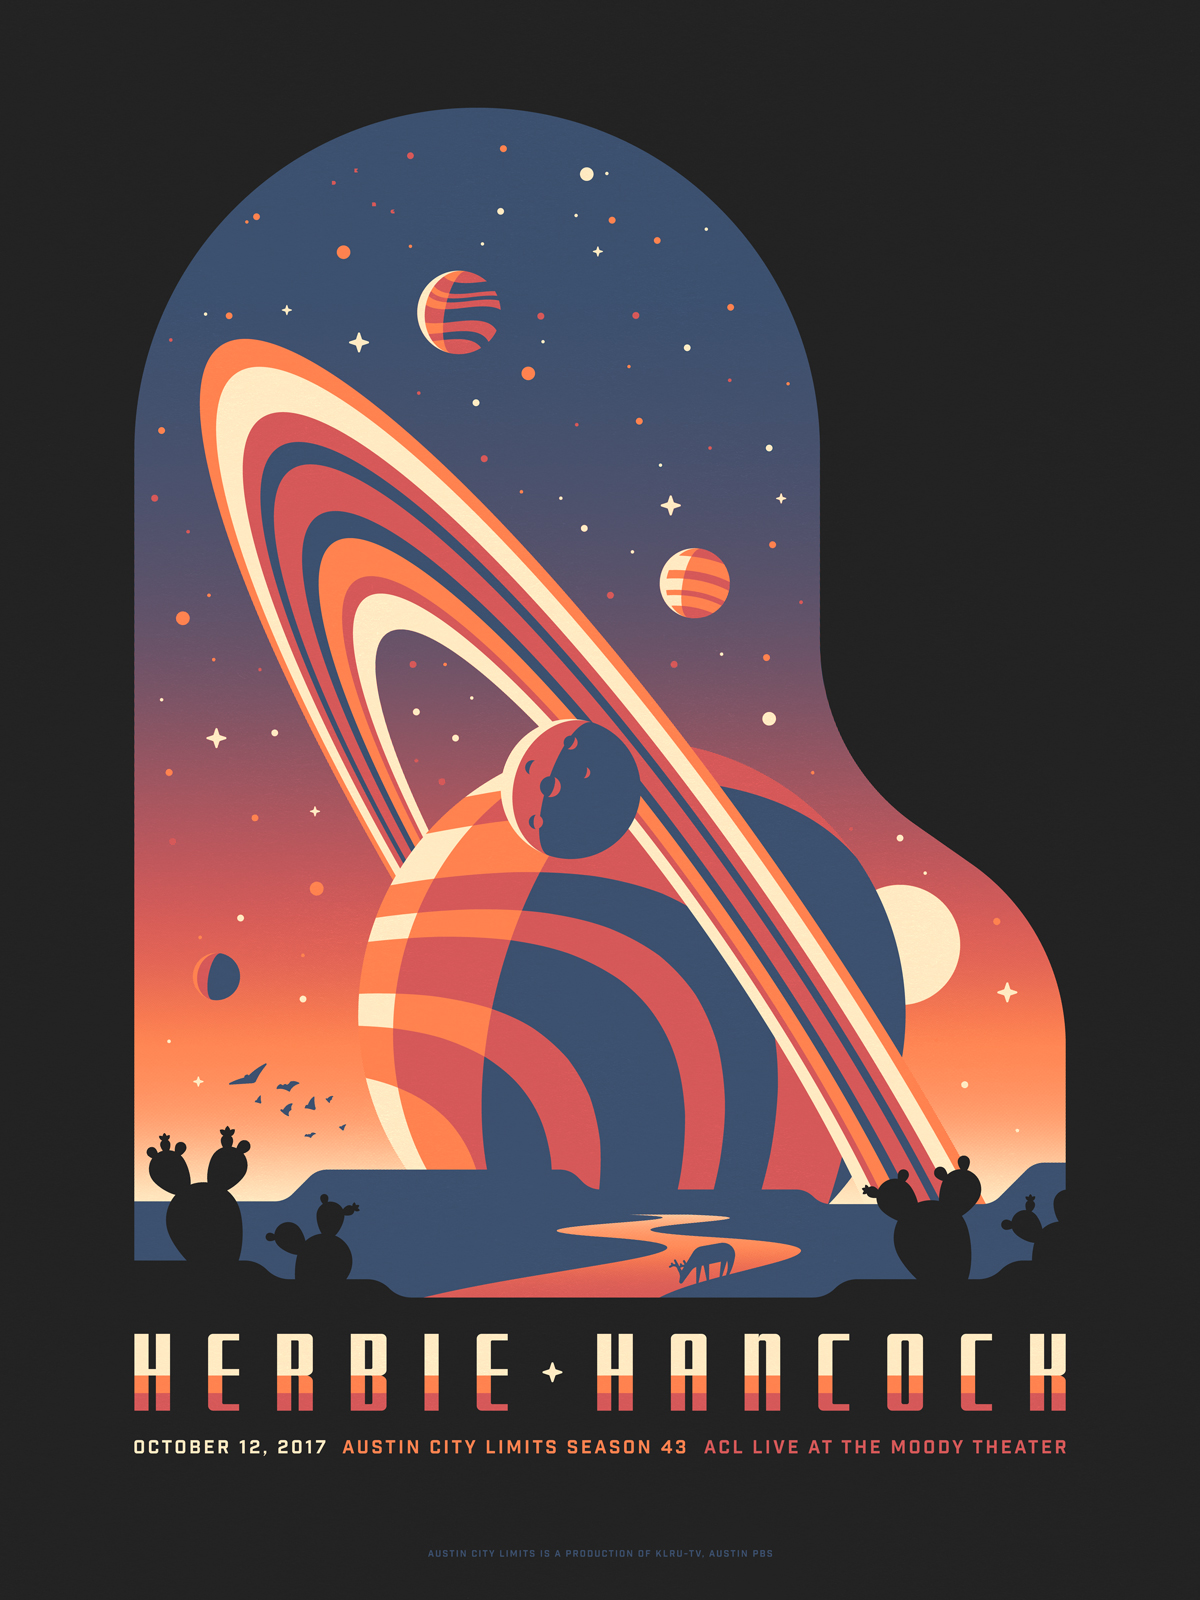 Herbie Hancock poster by DKNG